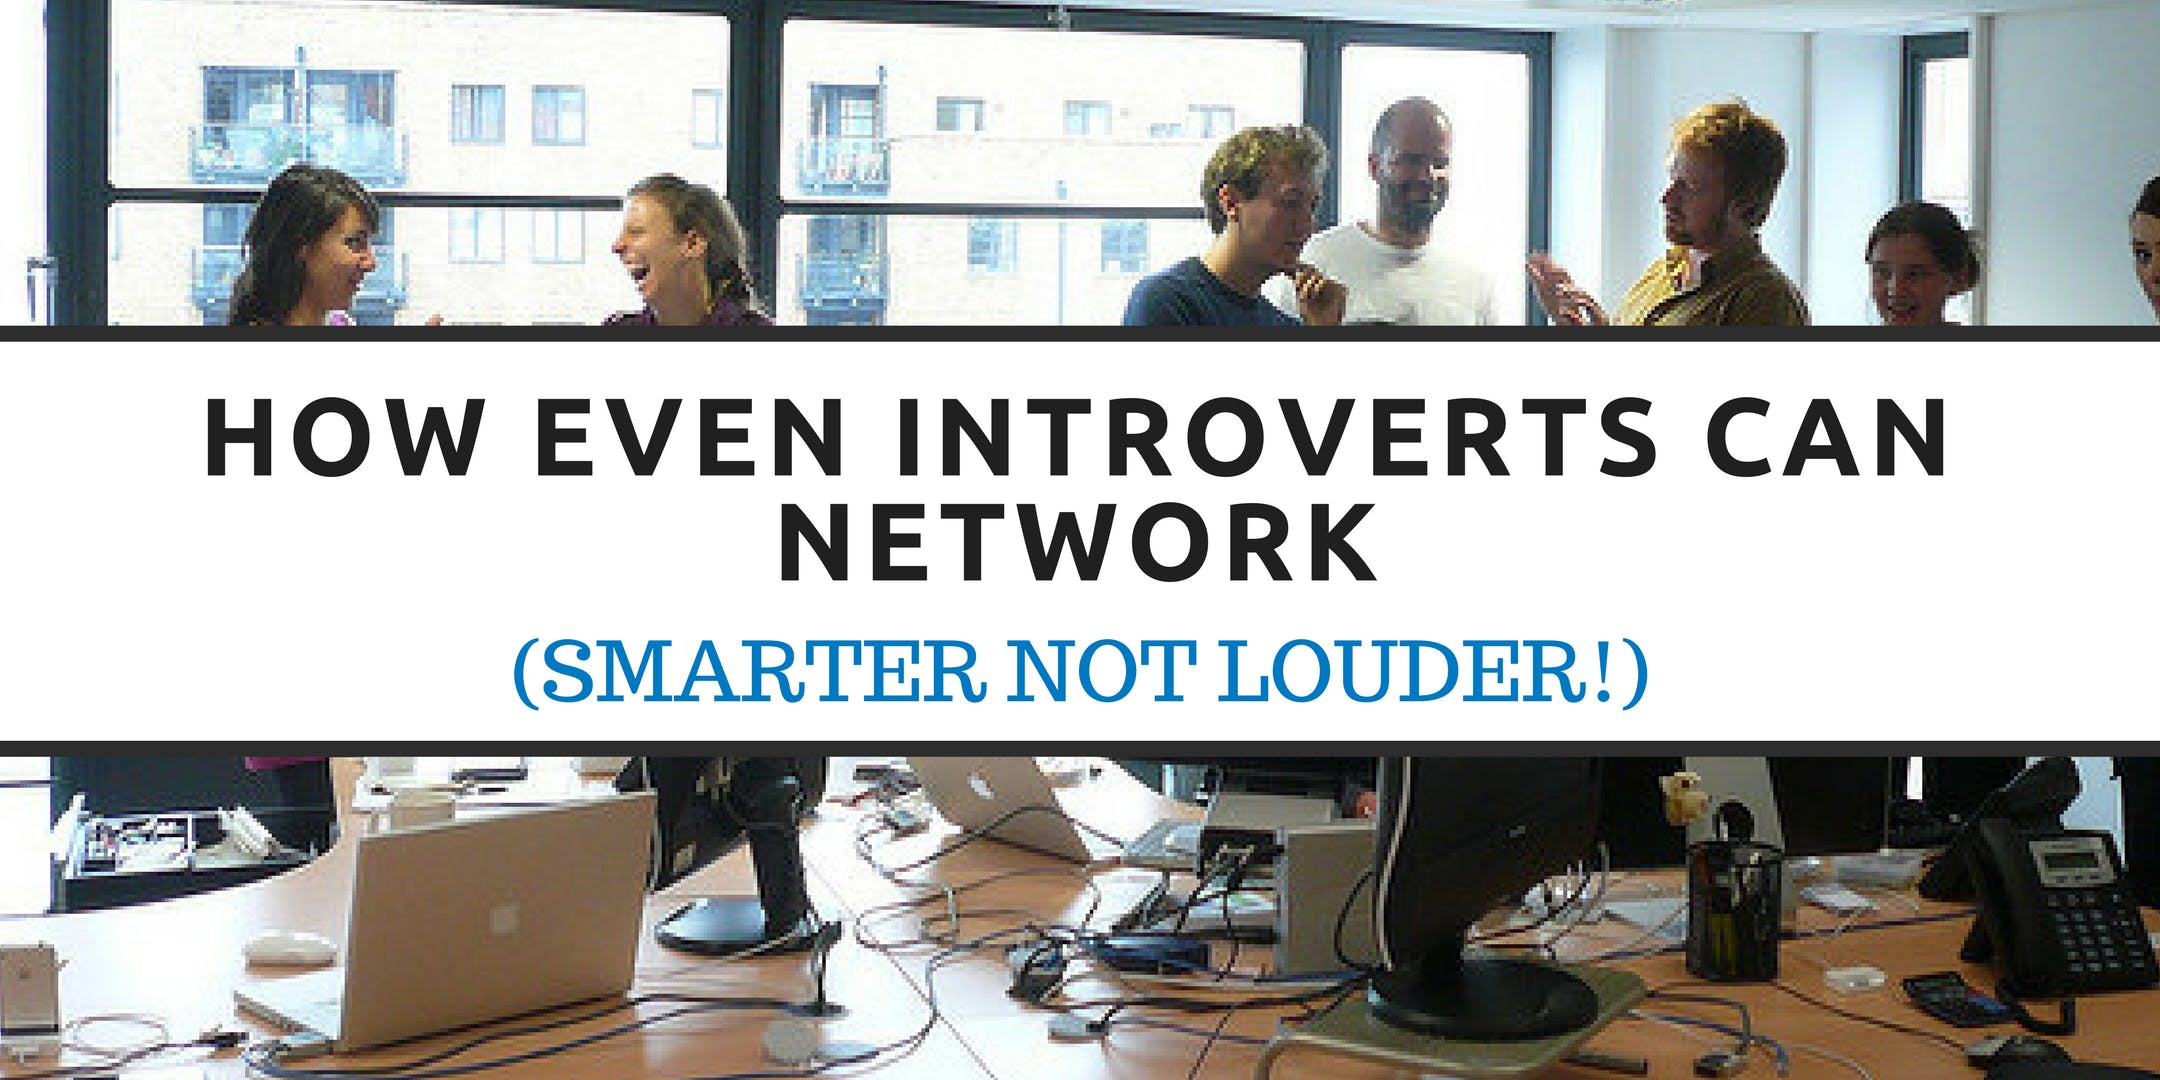 How Even Introverts Can Network (Smarter not Louder!) NYC